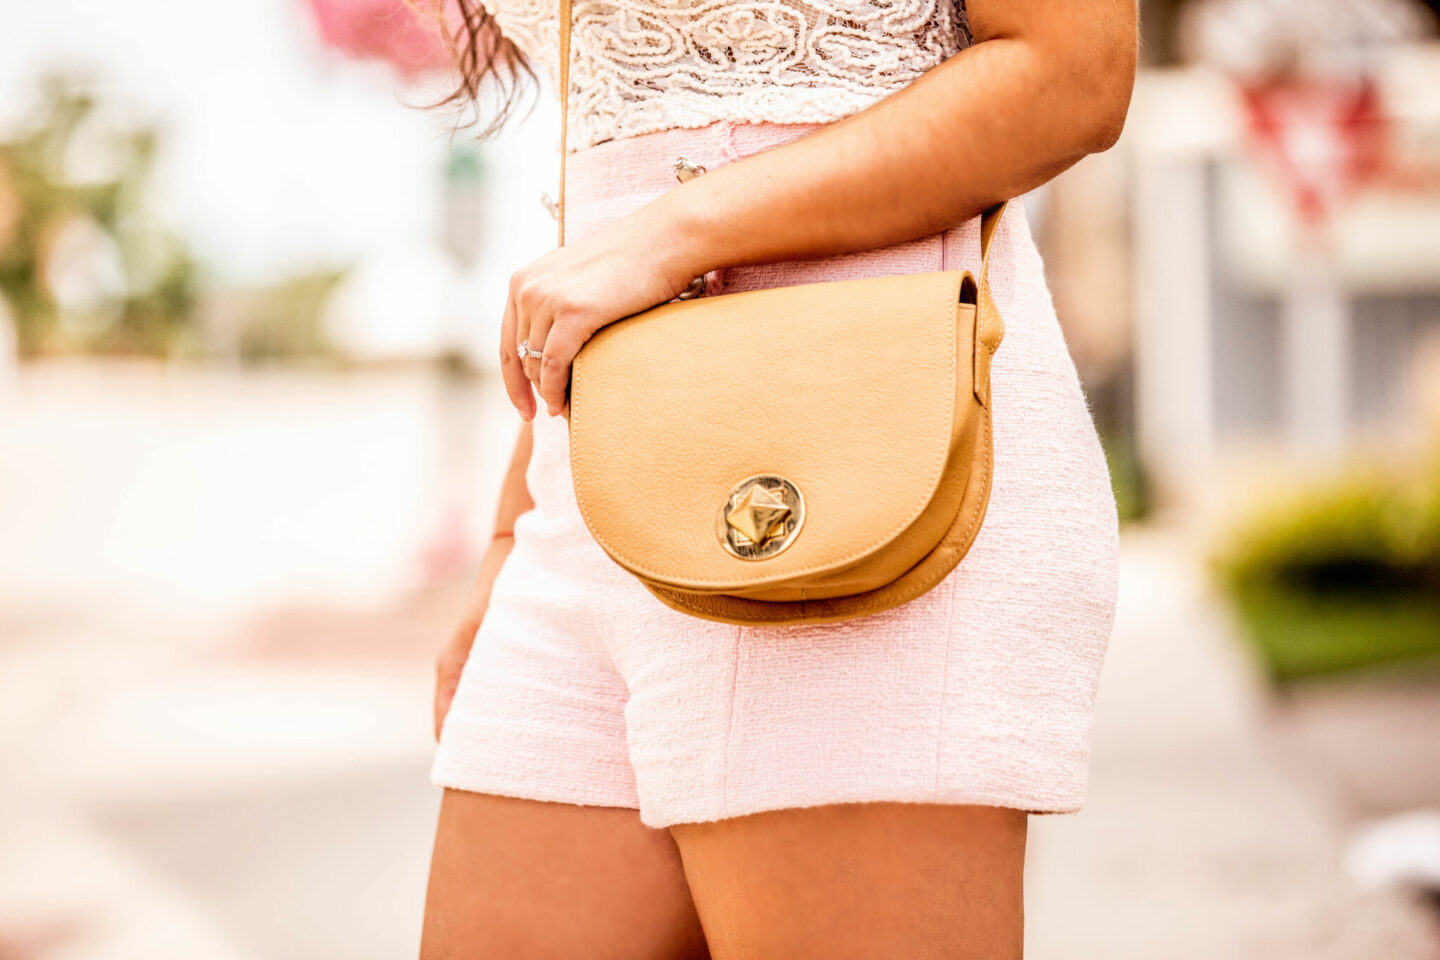 chicago blogger, chicago fashion, chicago women's handbag, beige crossbody handbag, baily lamb, the perfect crossbody handbag